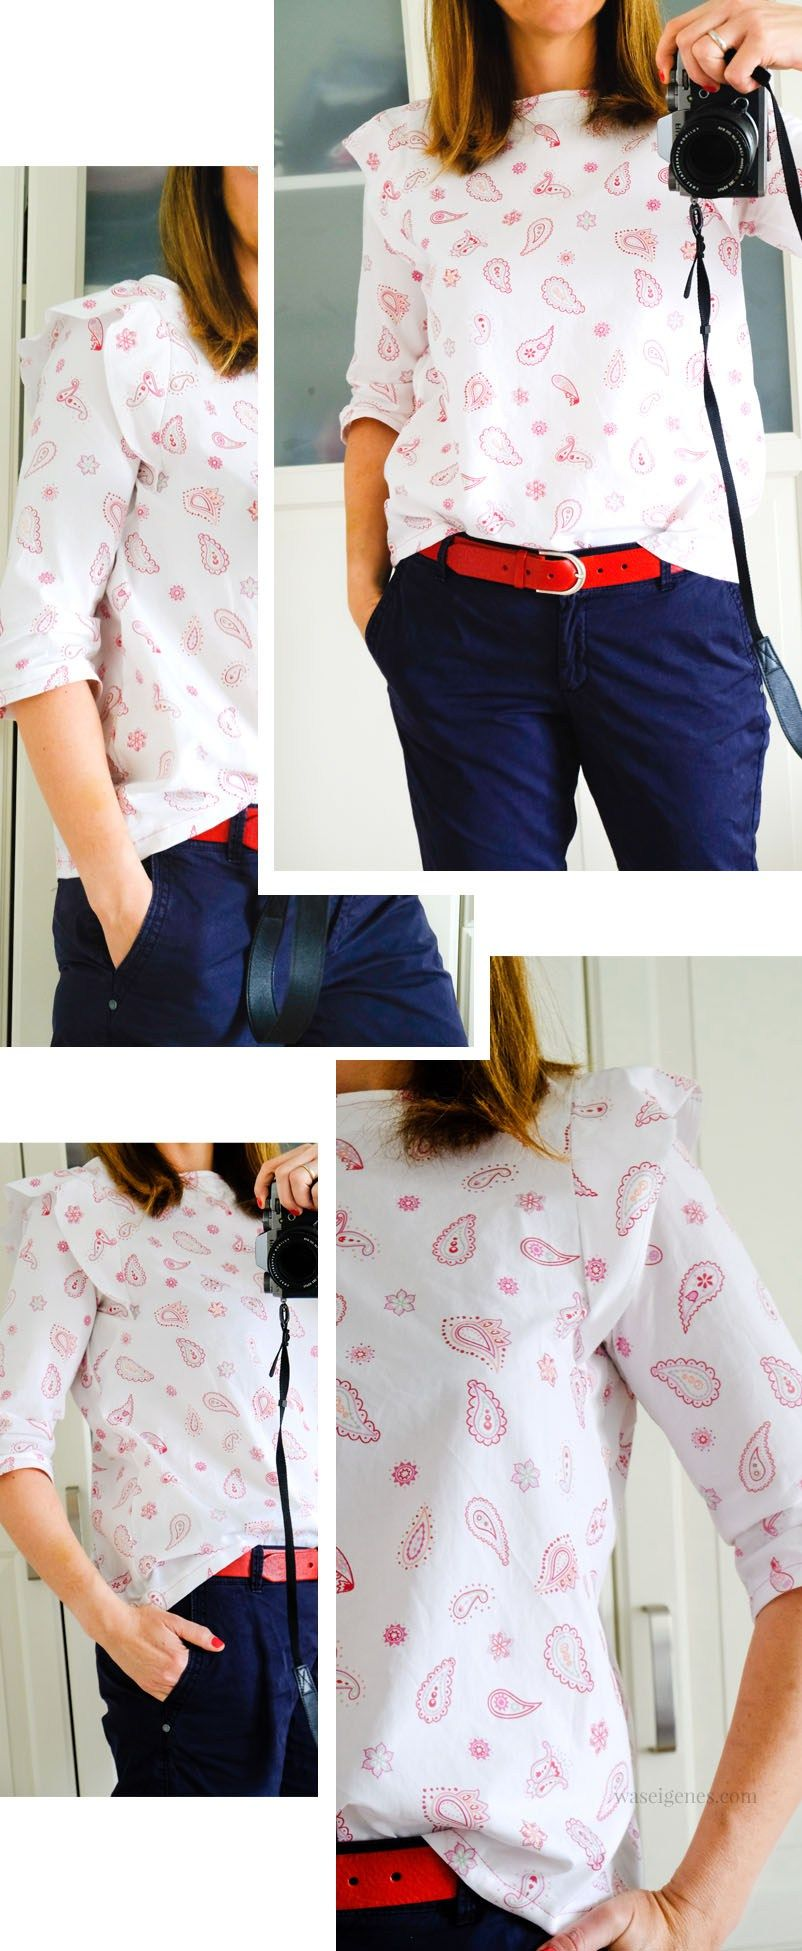 Diy Bluse Selbst Genahte Bluse Schnittmuster Frau Smilla Waseigenes Com Bluse Schnittmuster Schnittmuster Frauen Bluse Nahen